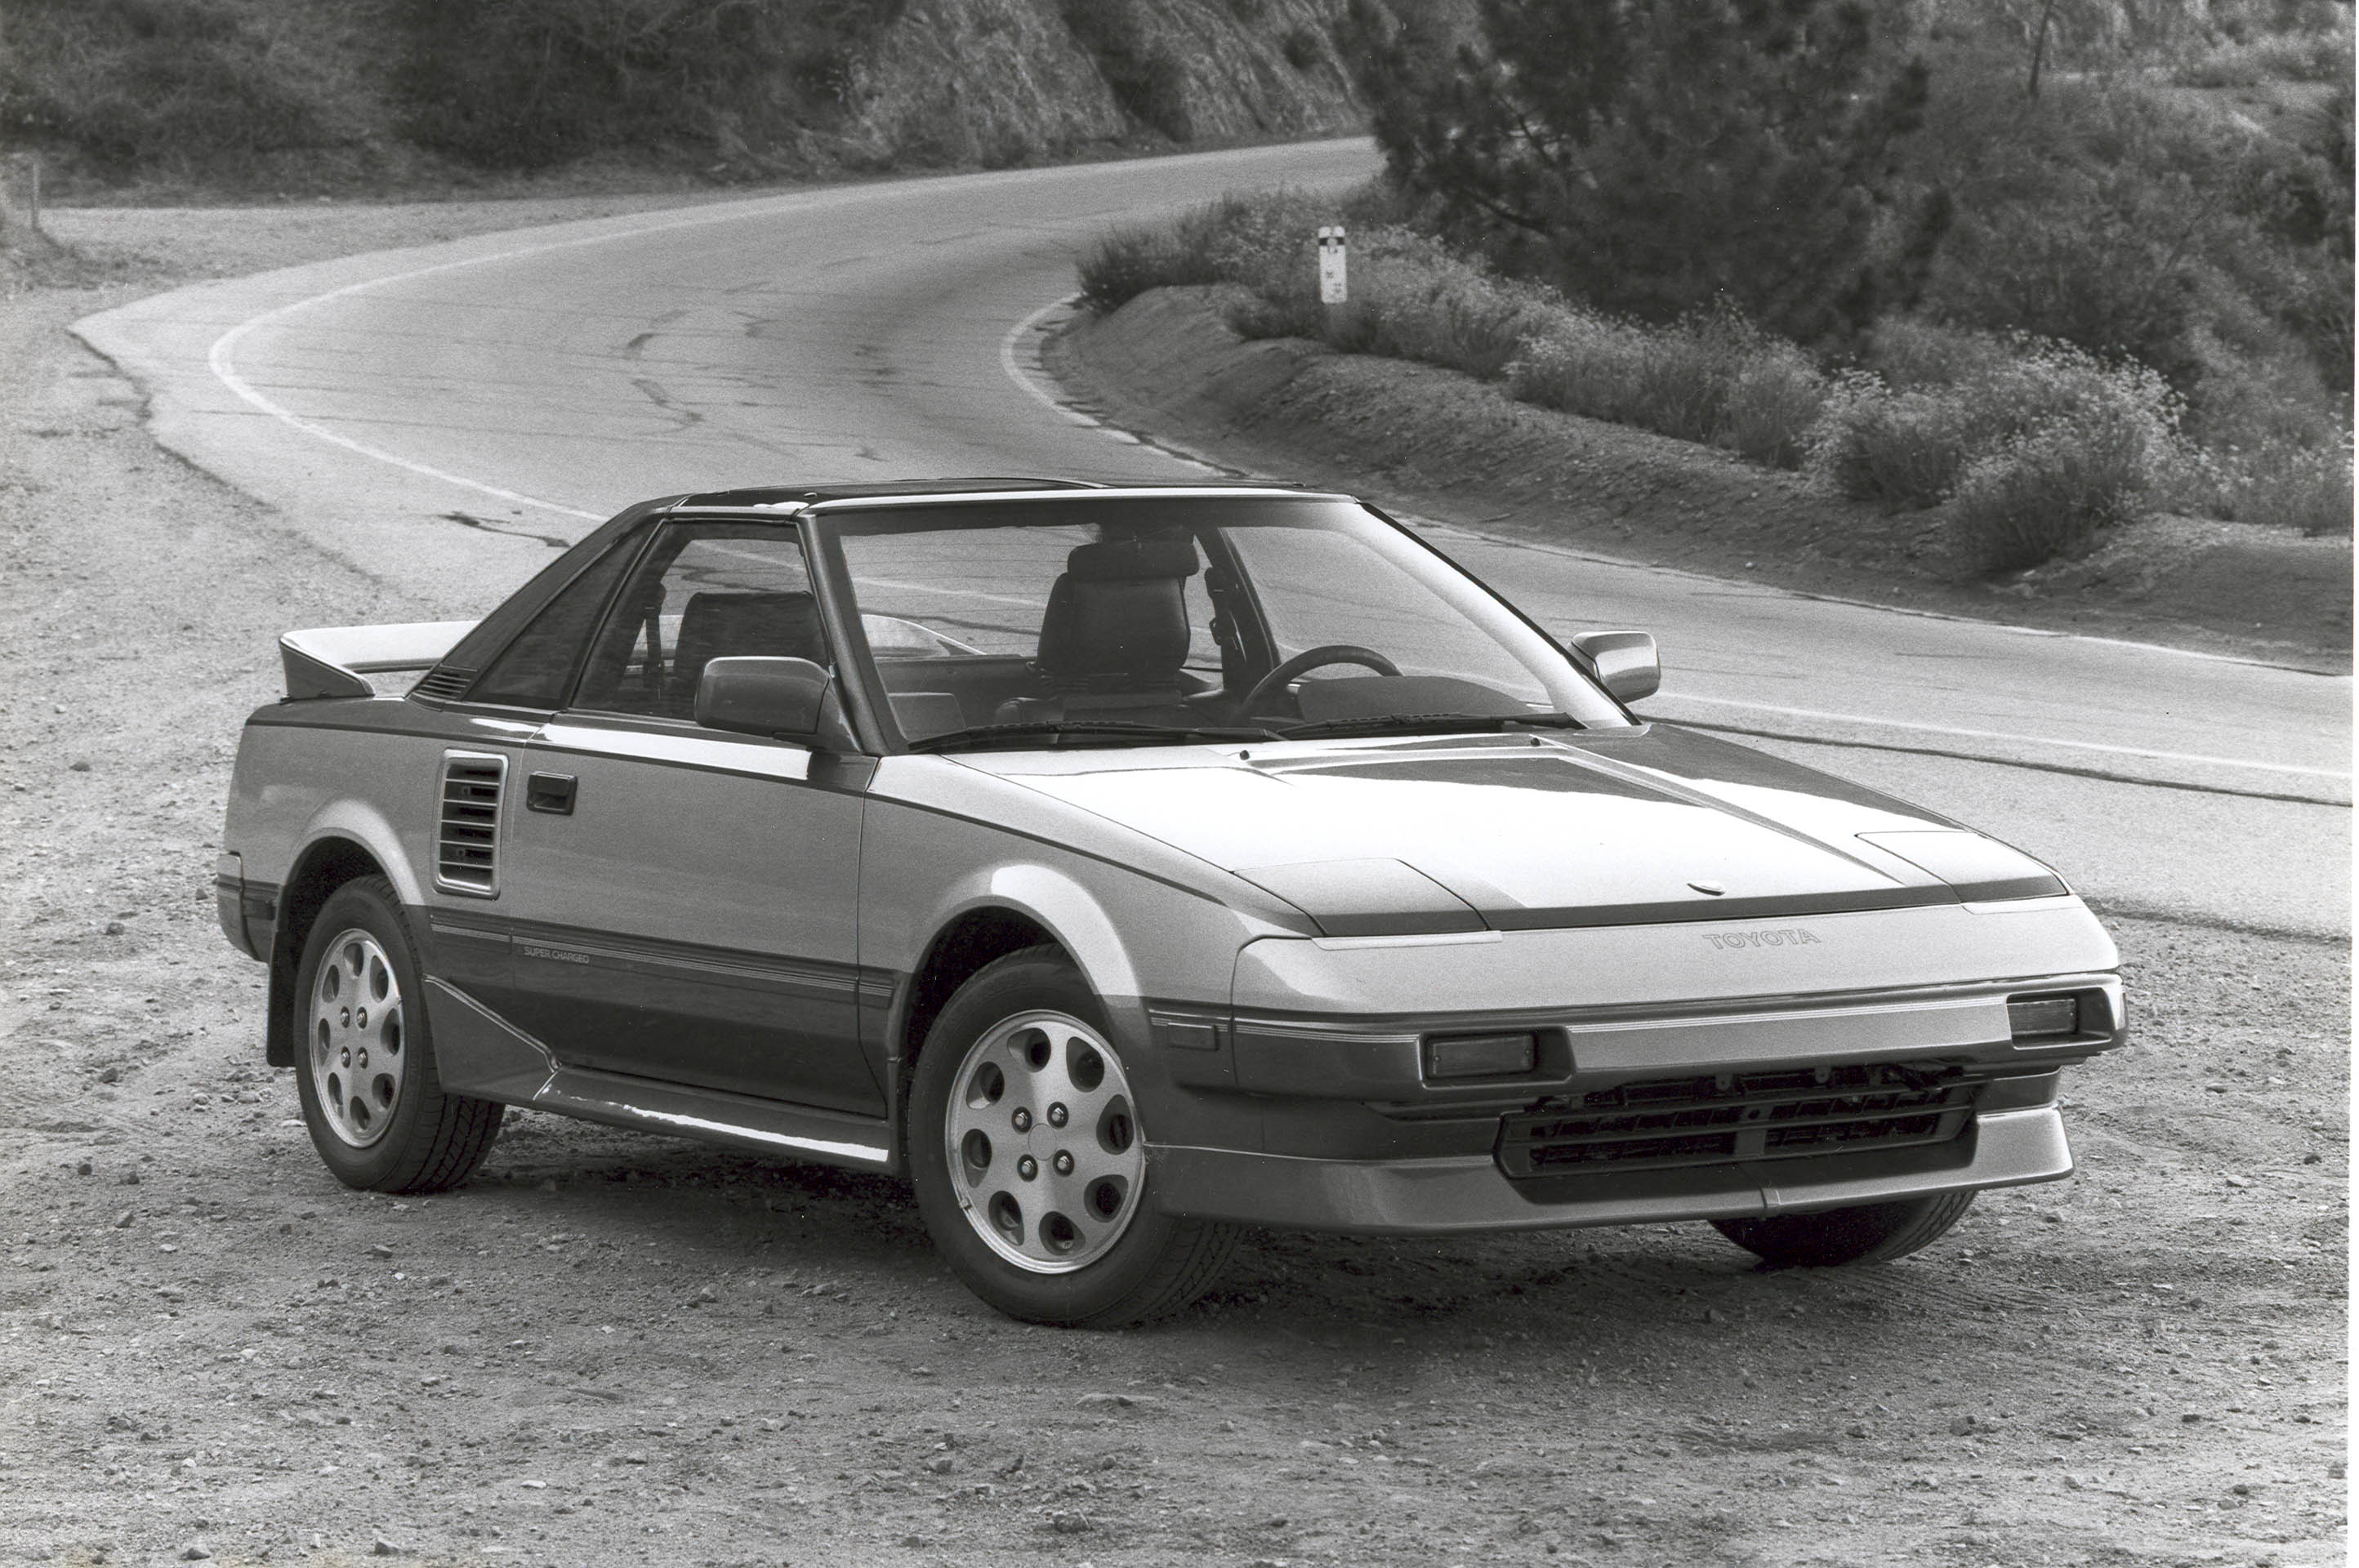 1988 Toyota MR2 front 3/4